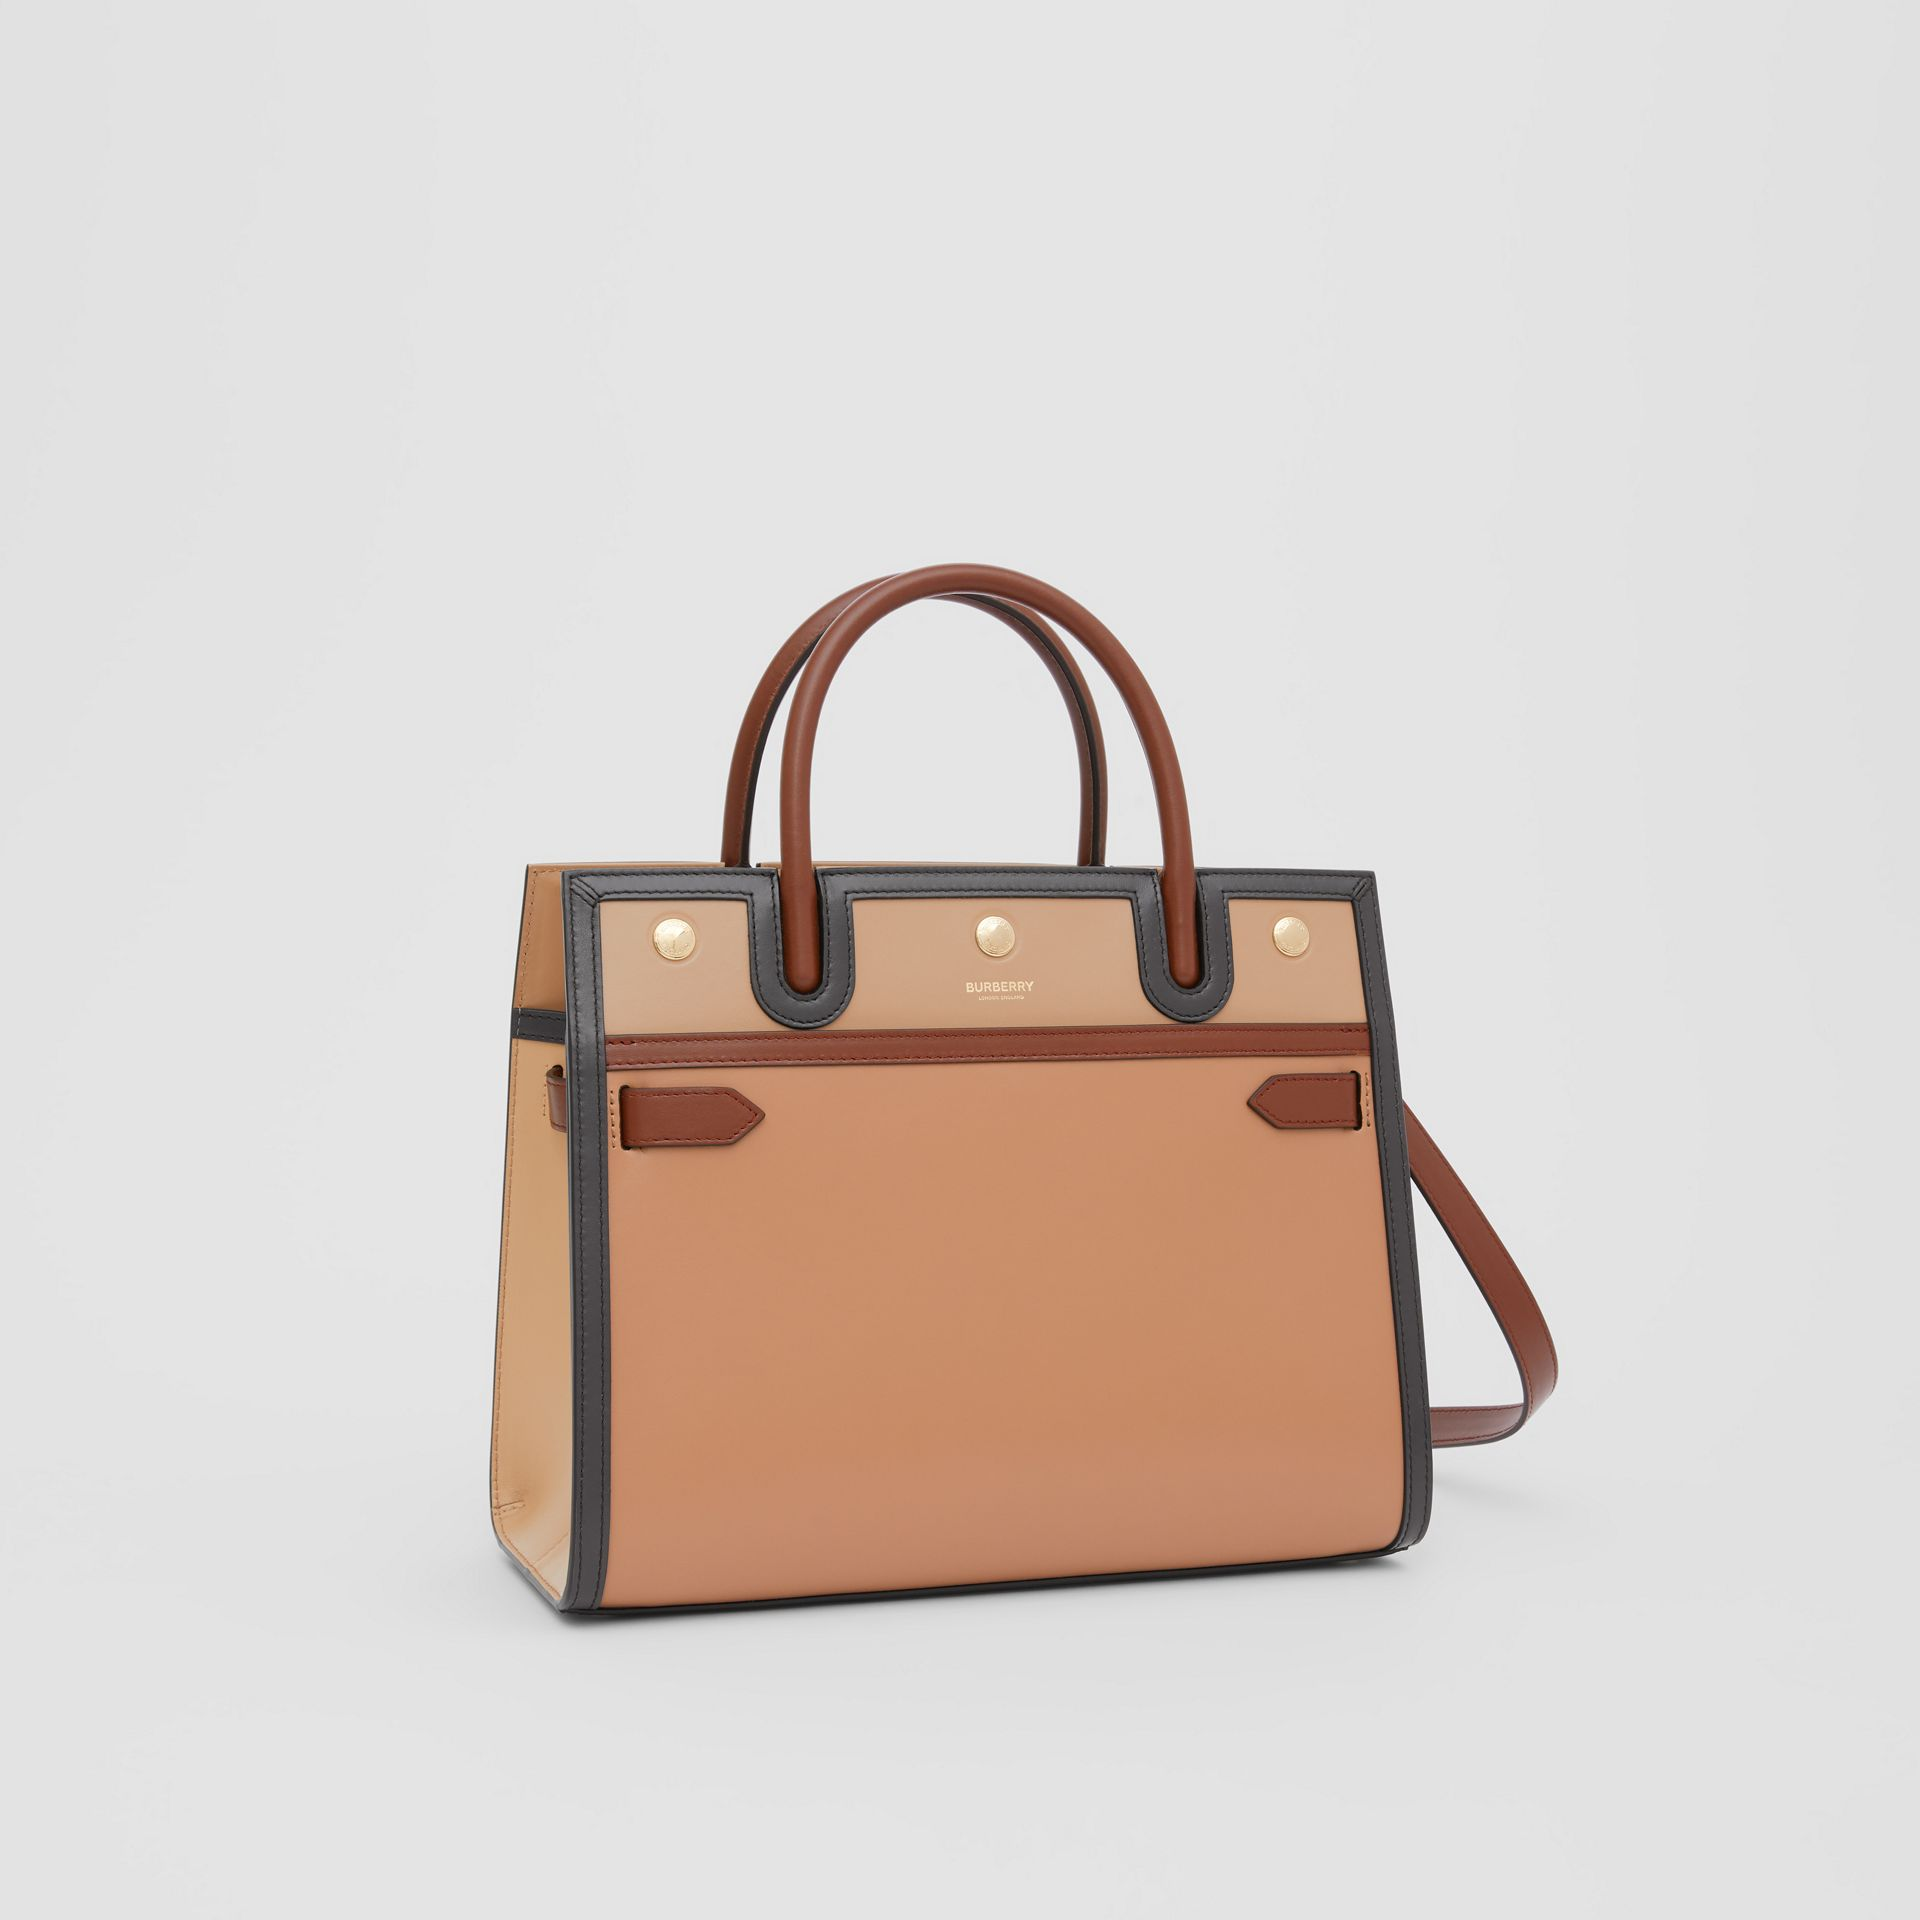 Small Leather Two-handle Title Bag in Soft Fawn - Women | Burberry - gallery image 6